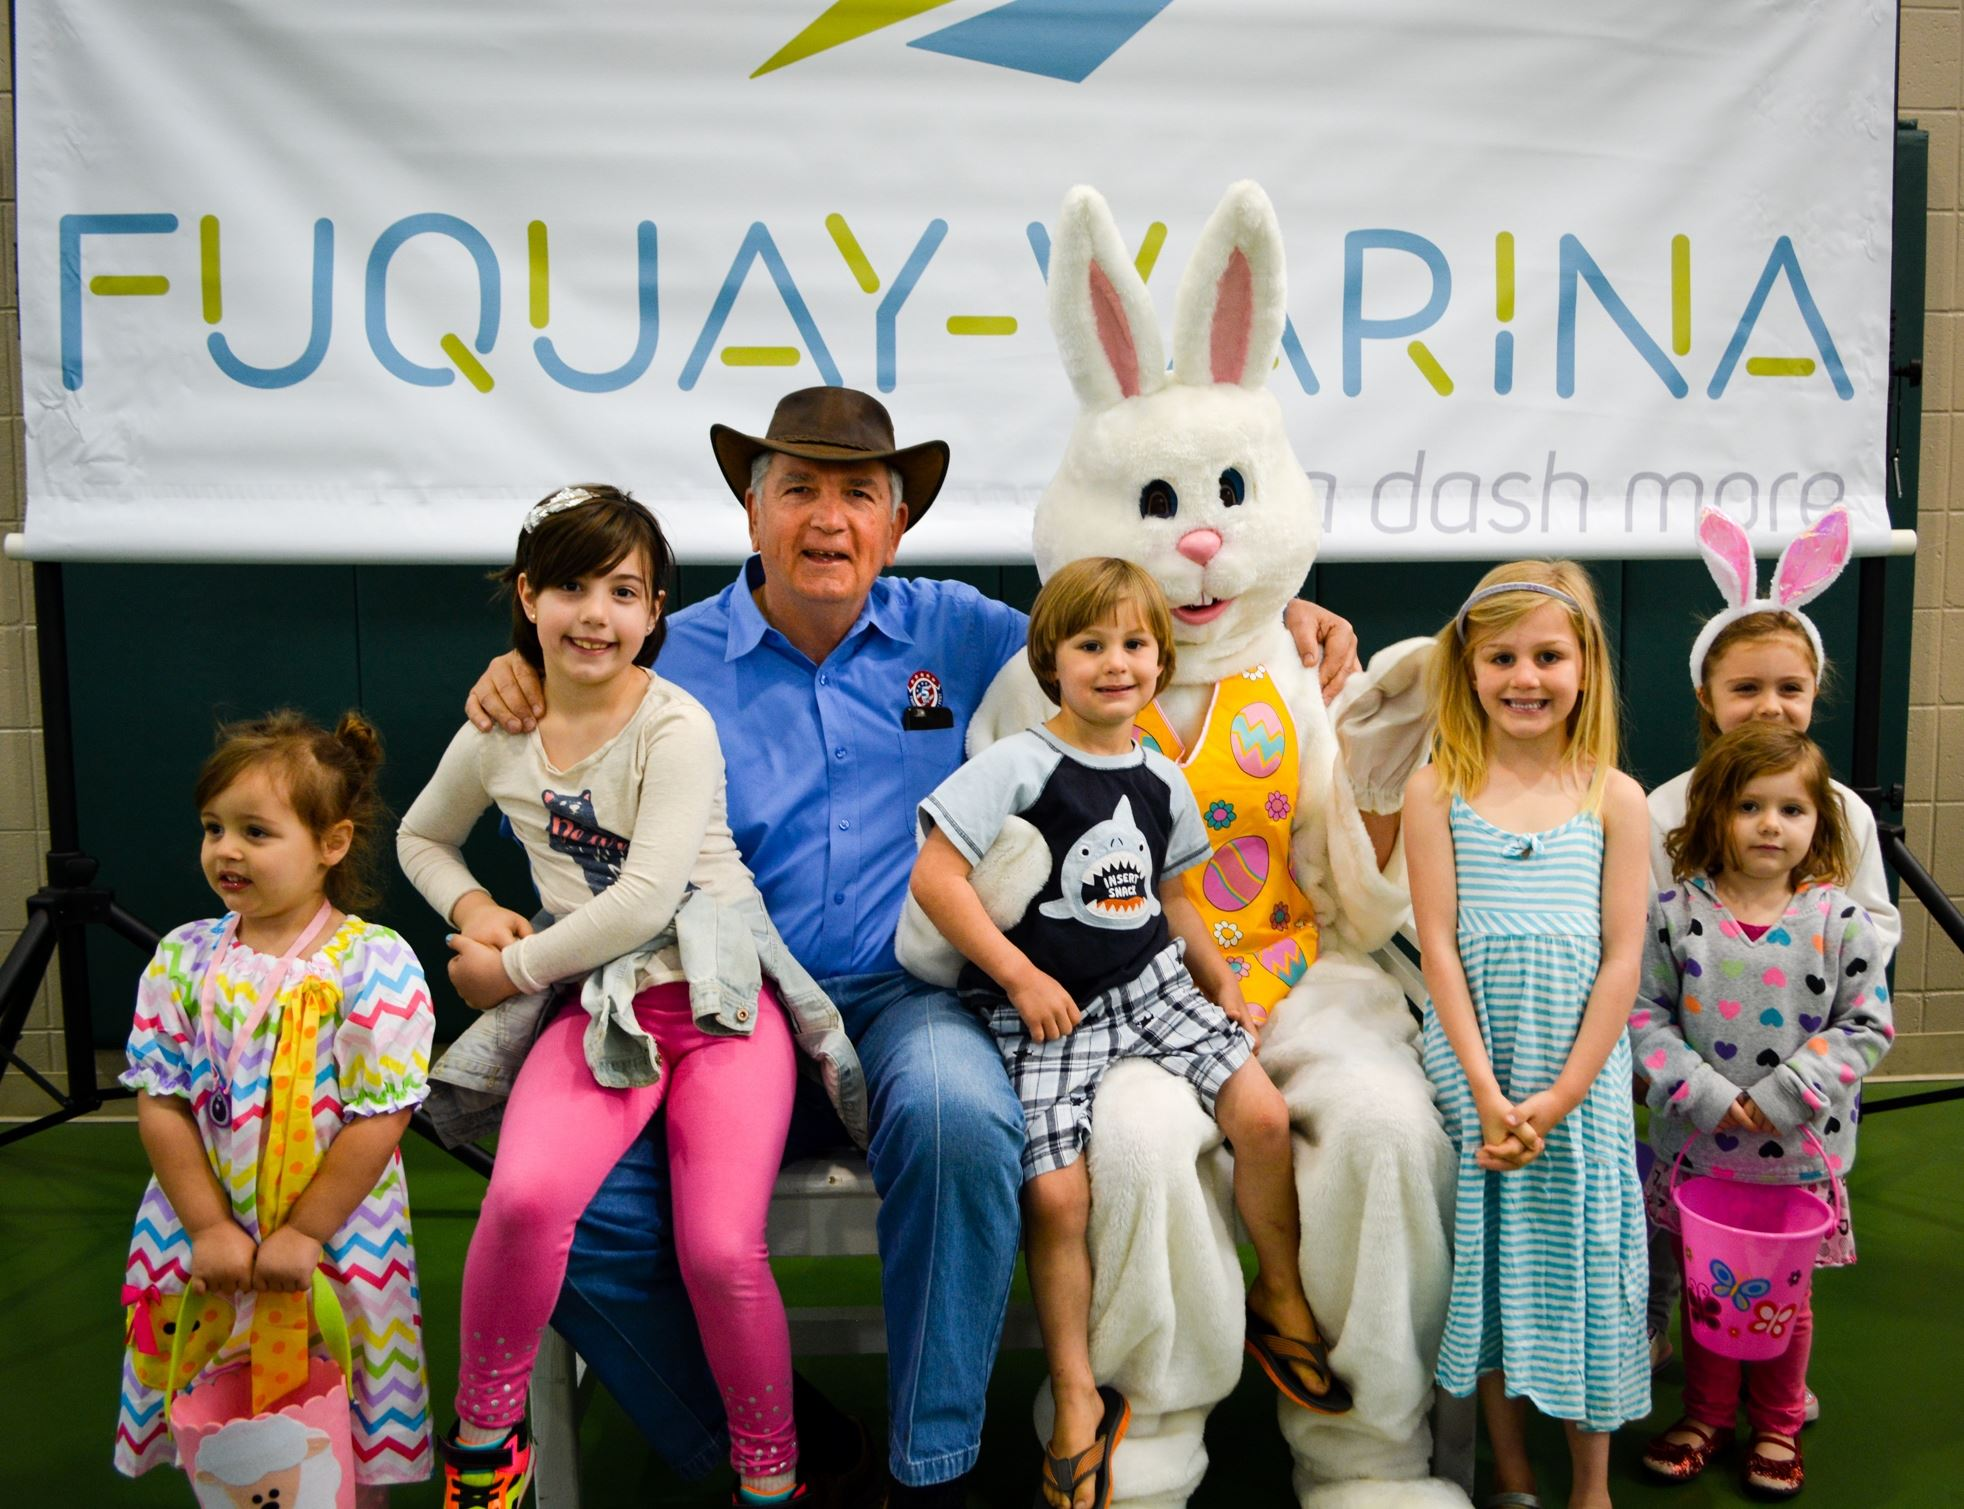 Mayor Byrne poses with Eater Bunny and kids